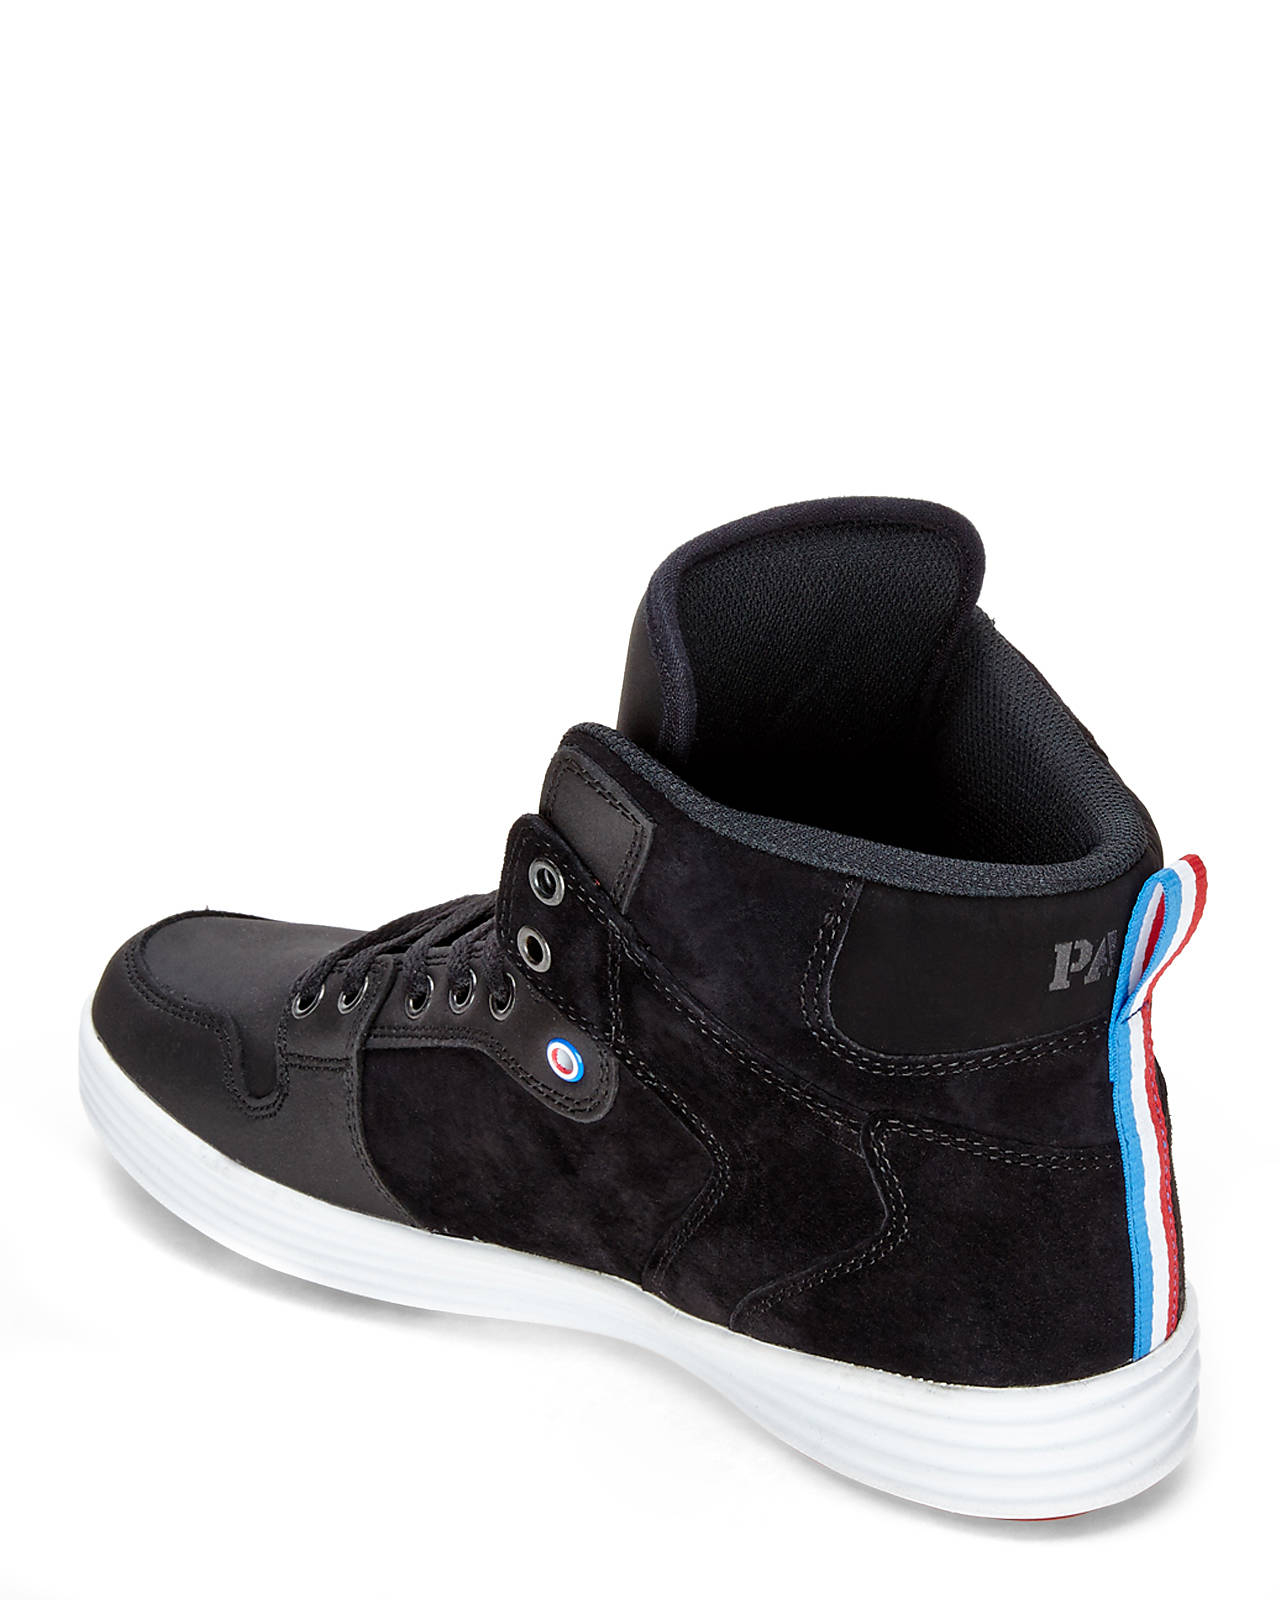 supra vaider lite shoes black black difference between